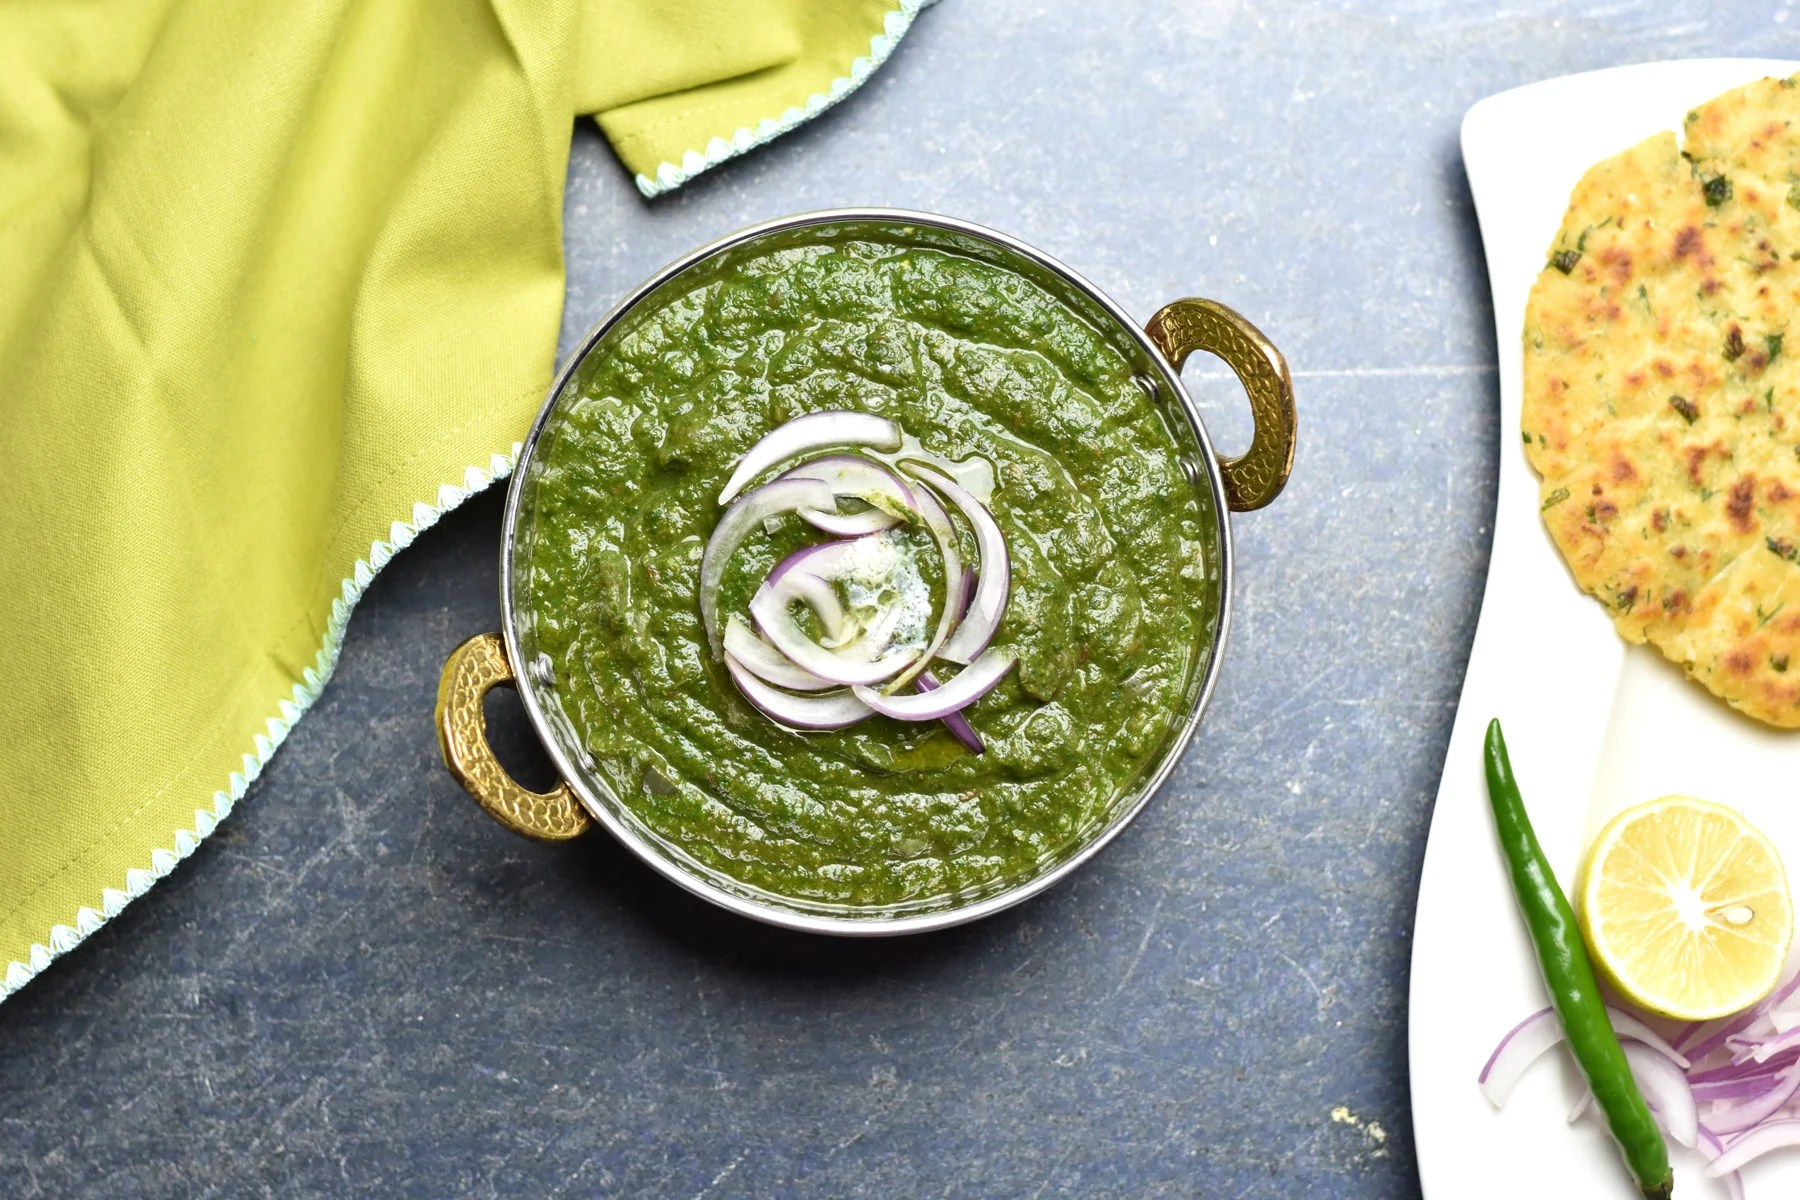 Instant pot indian recipes archives spice cravings quick and sarson ka saag indian spiced mustard greens by spice cravings sarson ka saag is forumfinder Choice Image